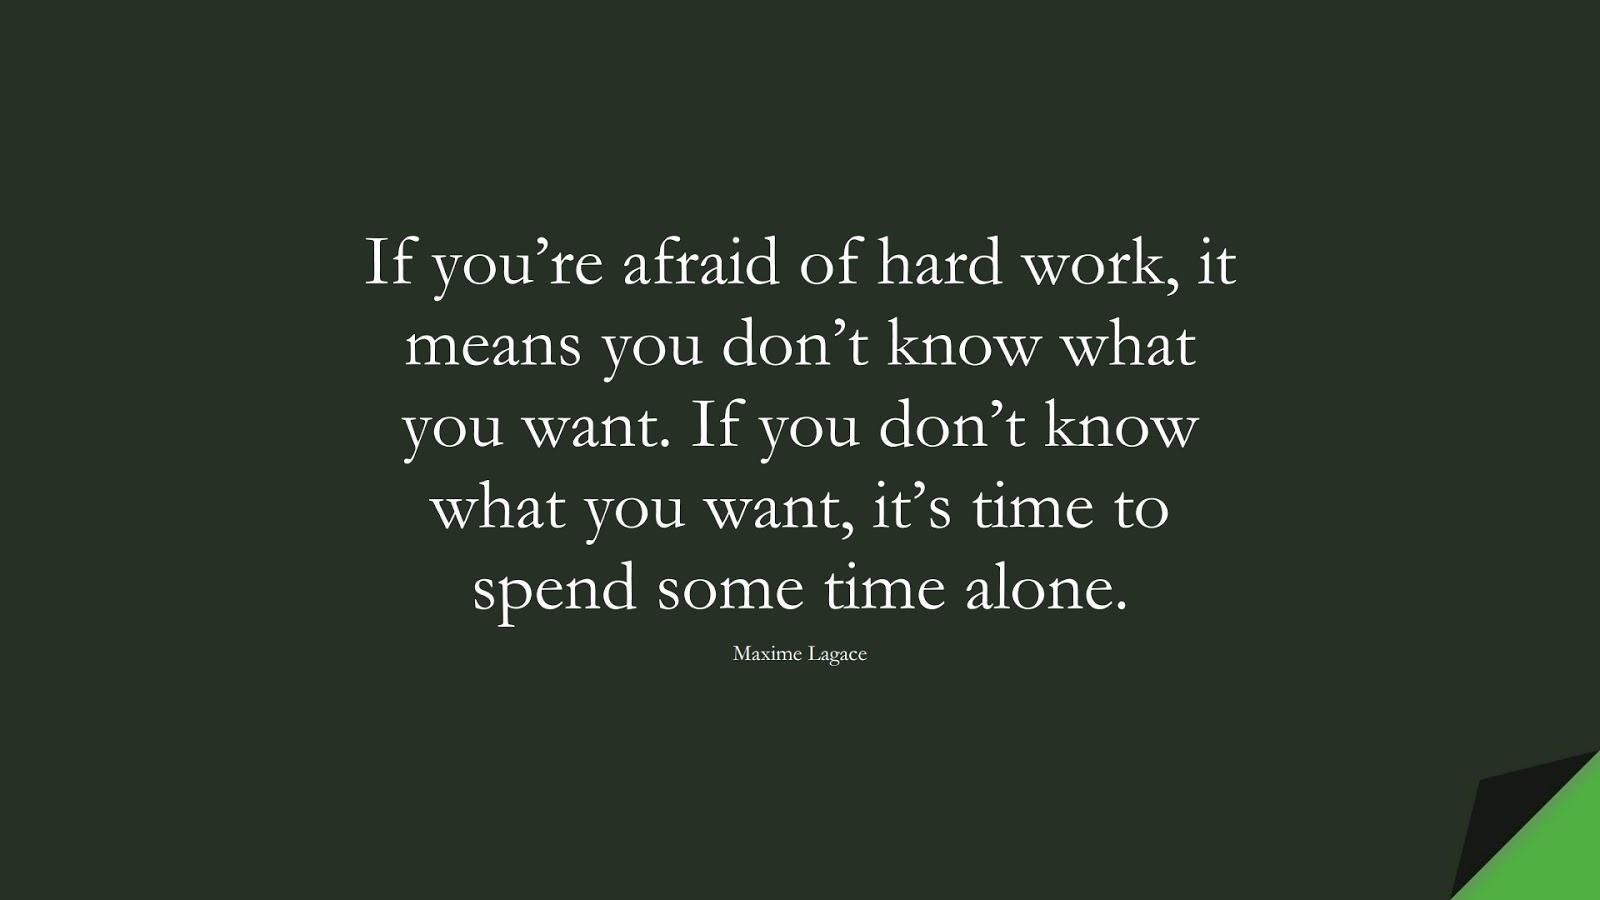 If you're afraid of hard work, it means you don't know what you want. If you don't know what you want, it's time to spend some time alone. (Maxime Lagace);  #NeverGiveUpQuotes